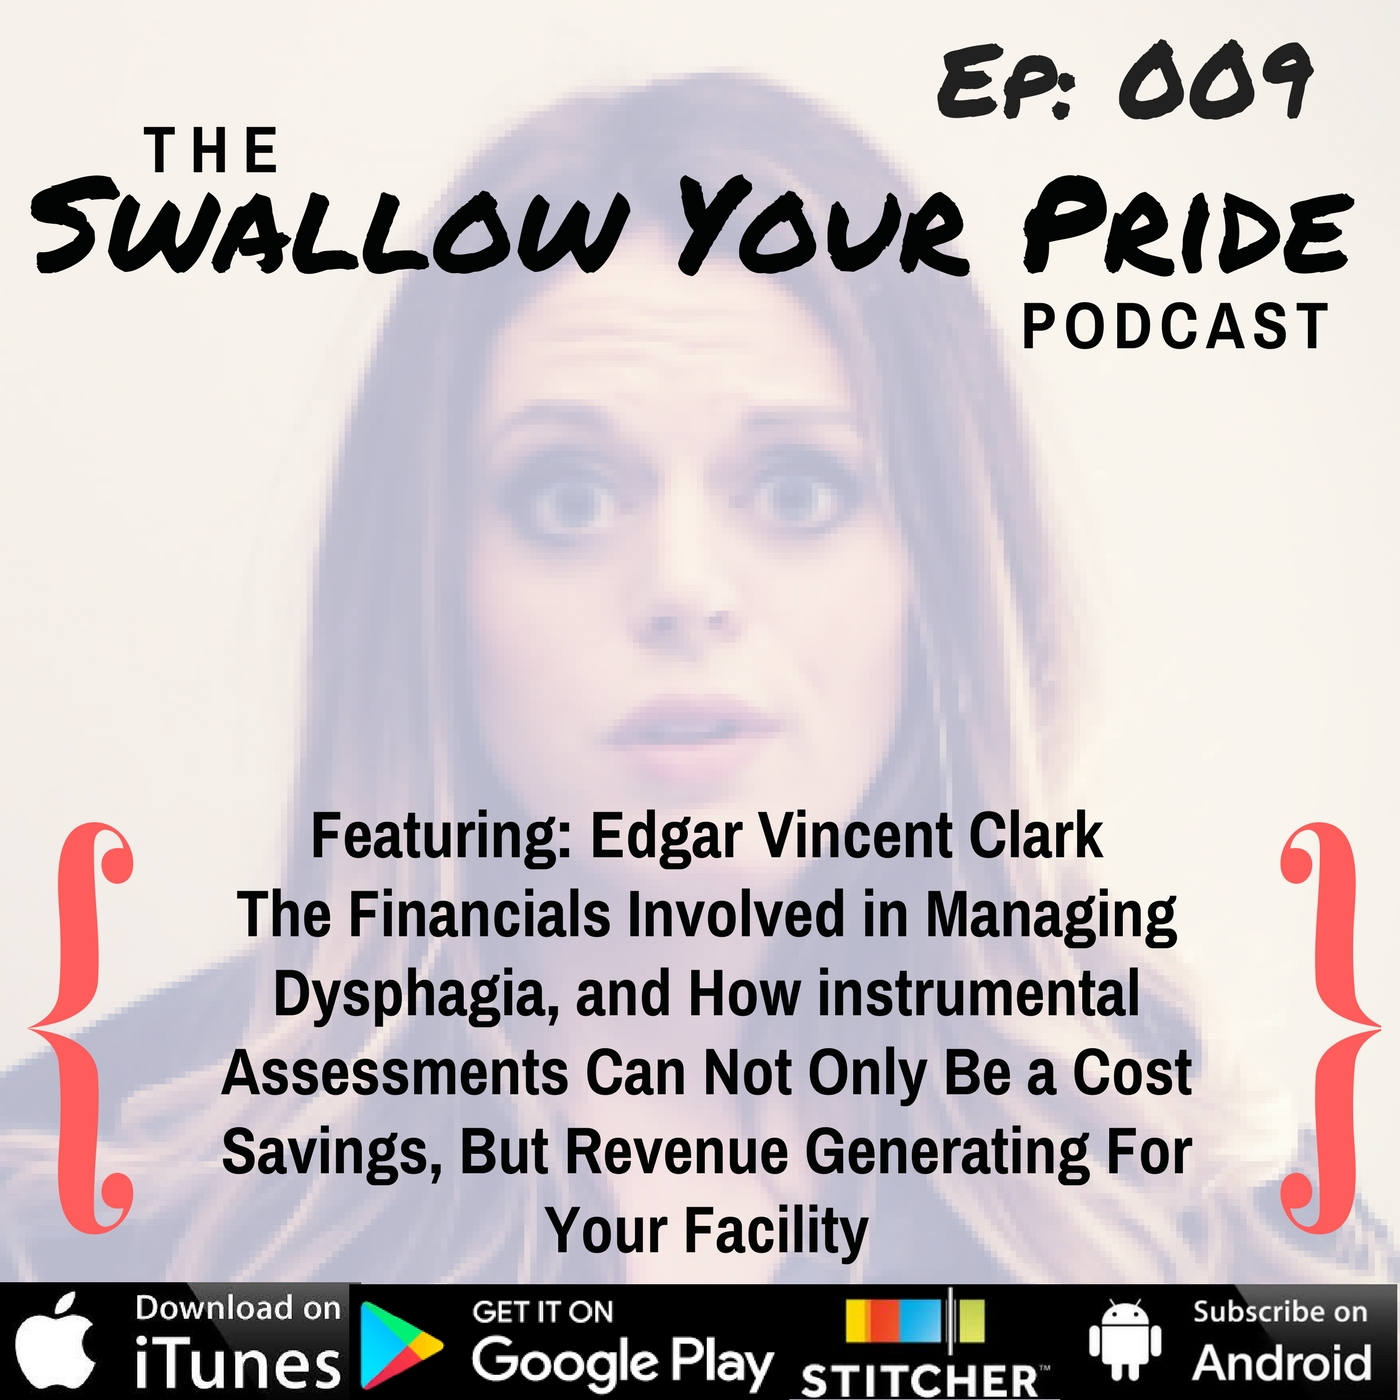 009 – Edgar Vincent Clark, M. Ed. CCC-SLP – The Financials Involved in Managing Dysphagia, and How instrumental Assessments Can Not Only Be a Cost Savings, But Revenue Generating For Your Facility